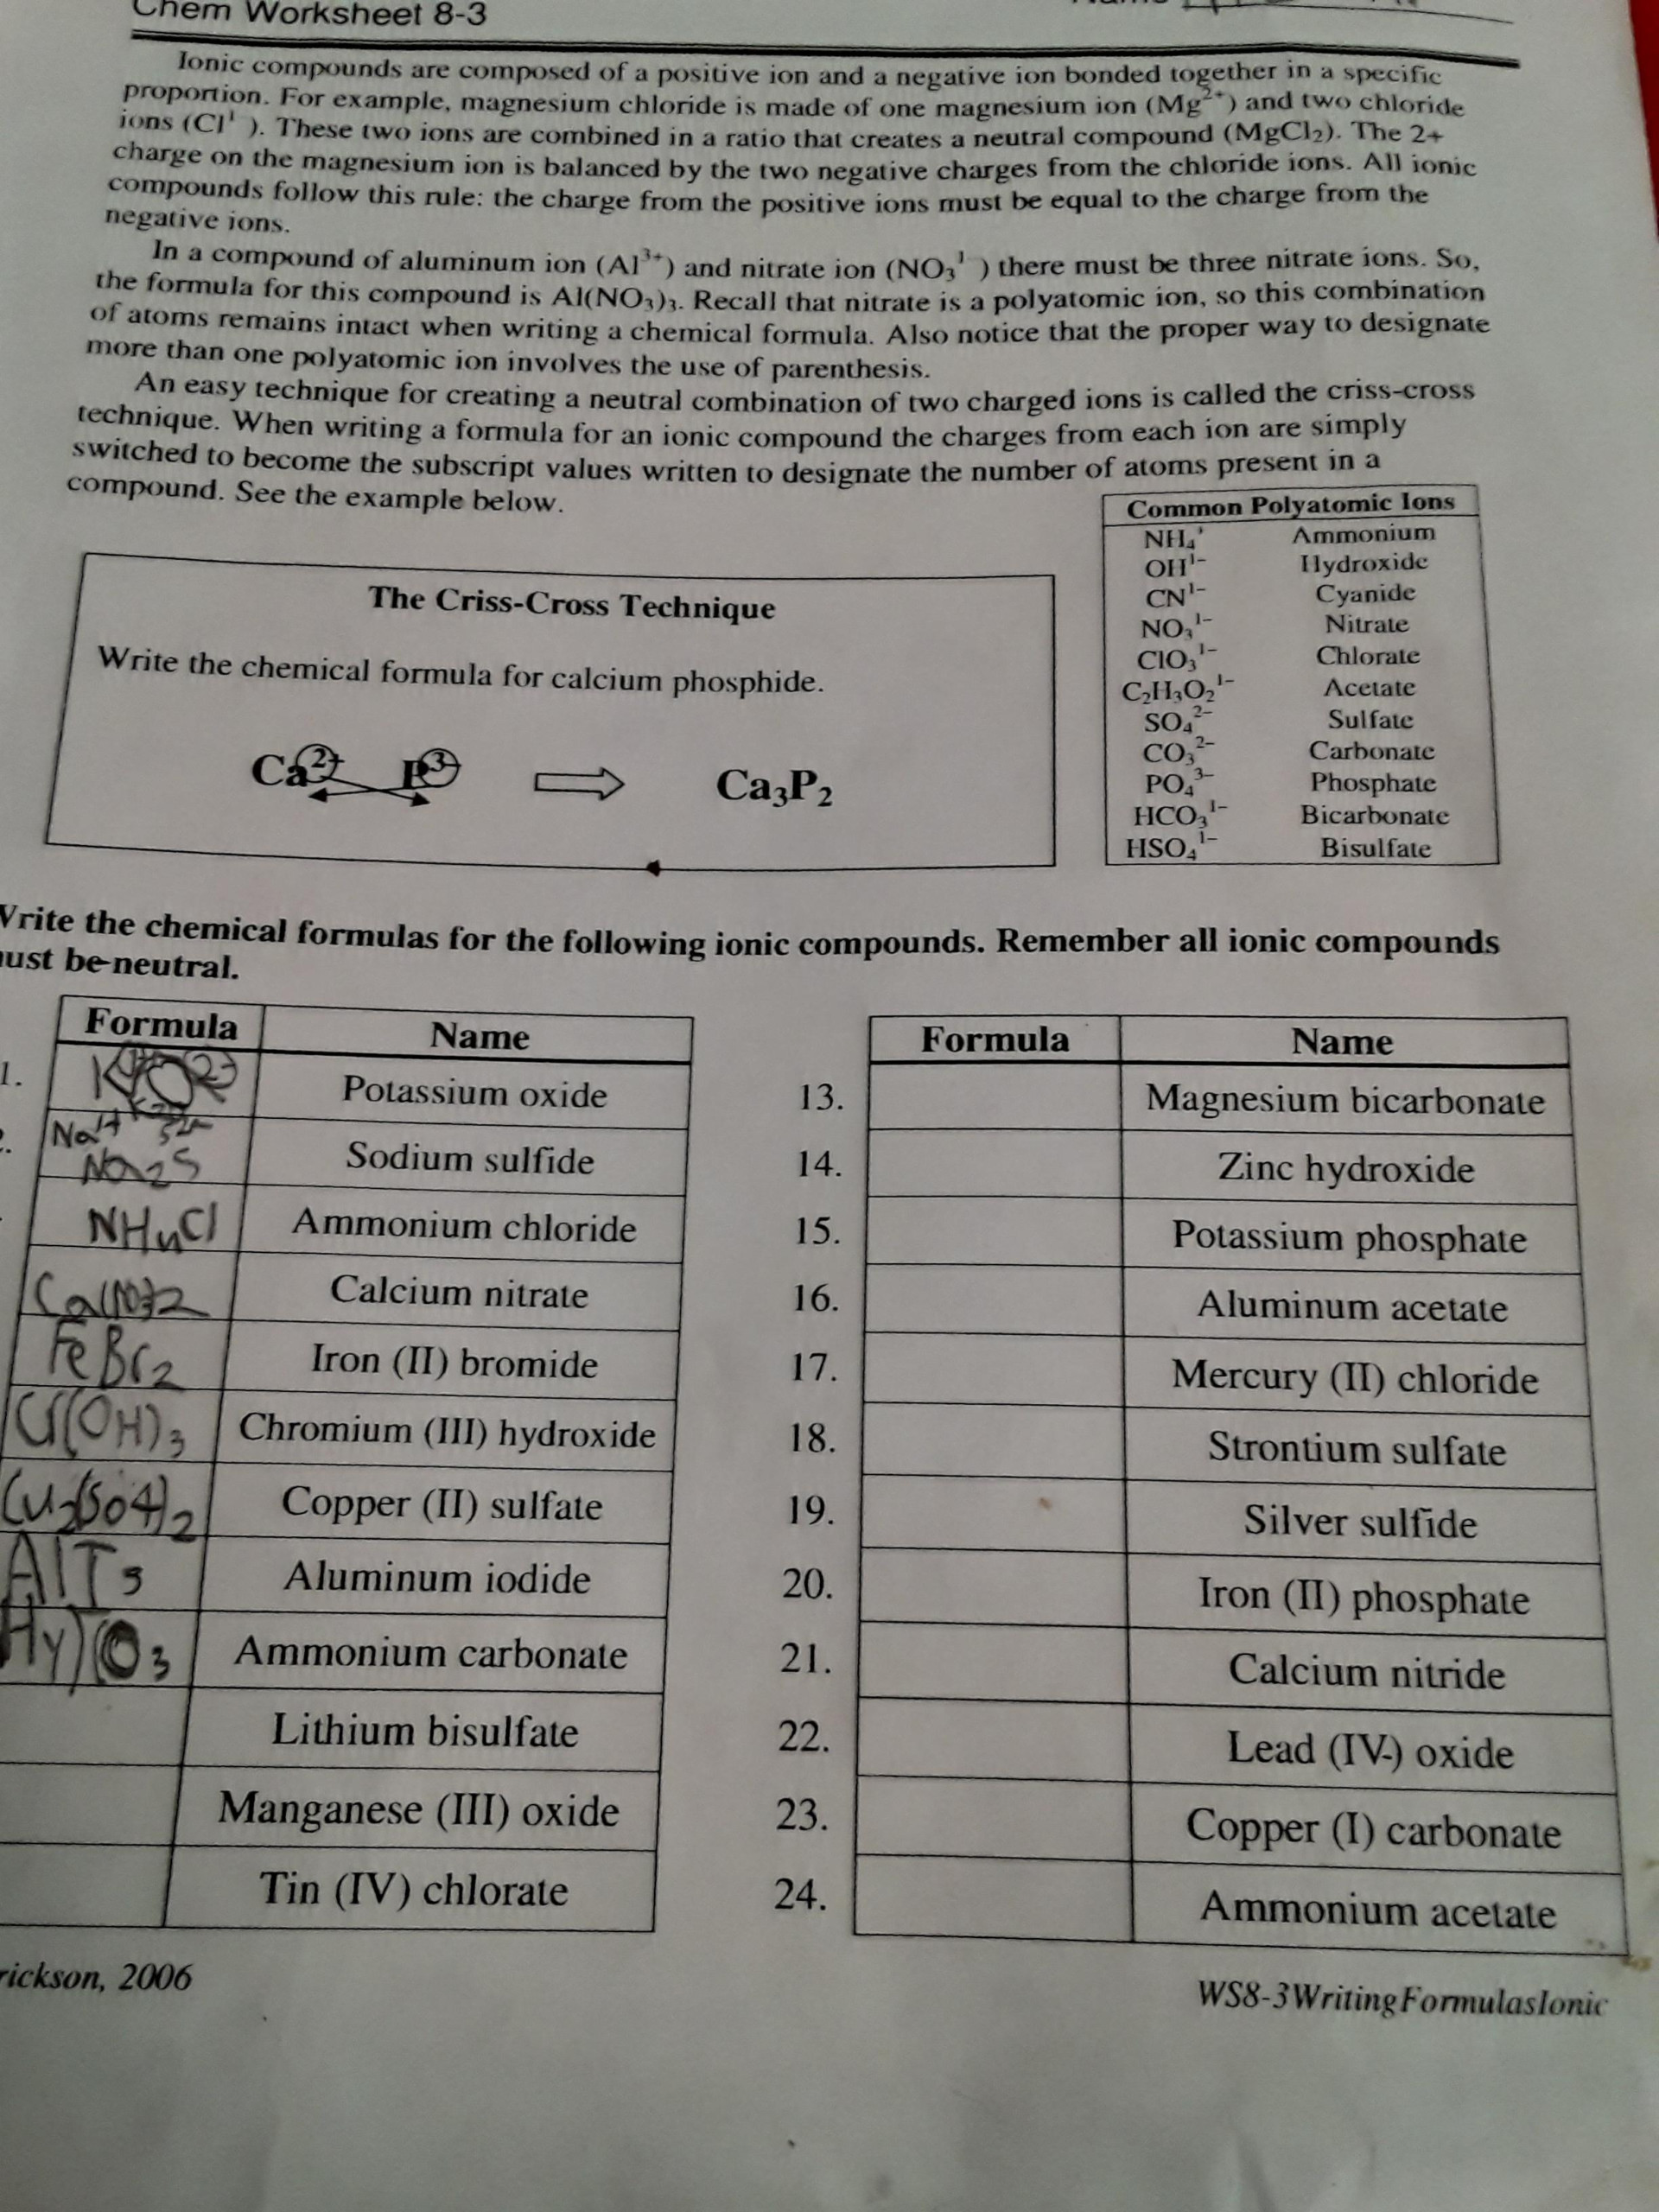 Writing Formulas For Ionic Compounds Chem Worksheet 8 3